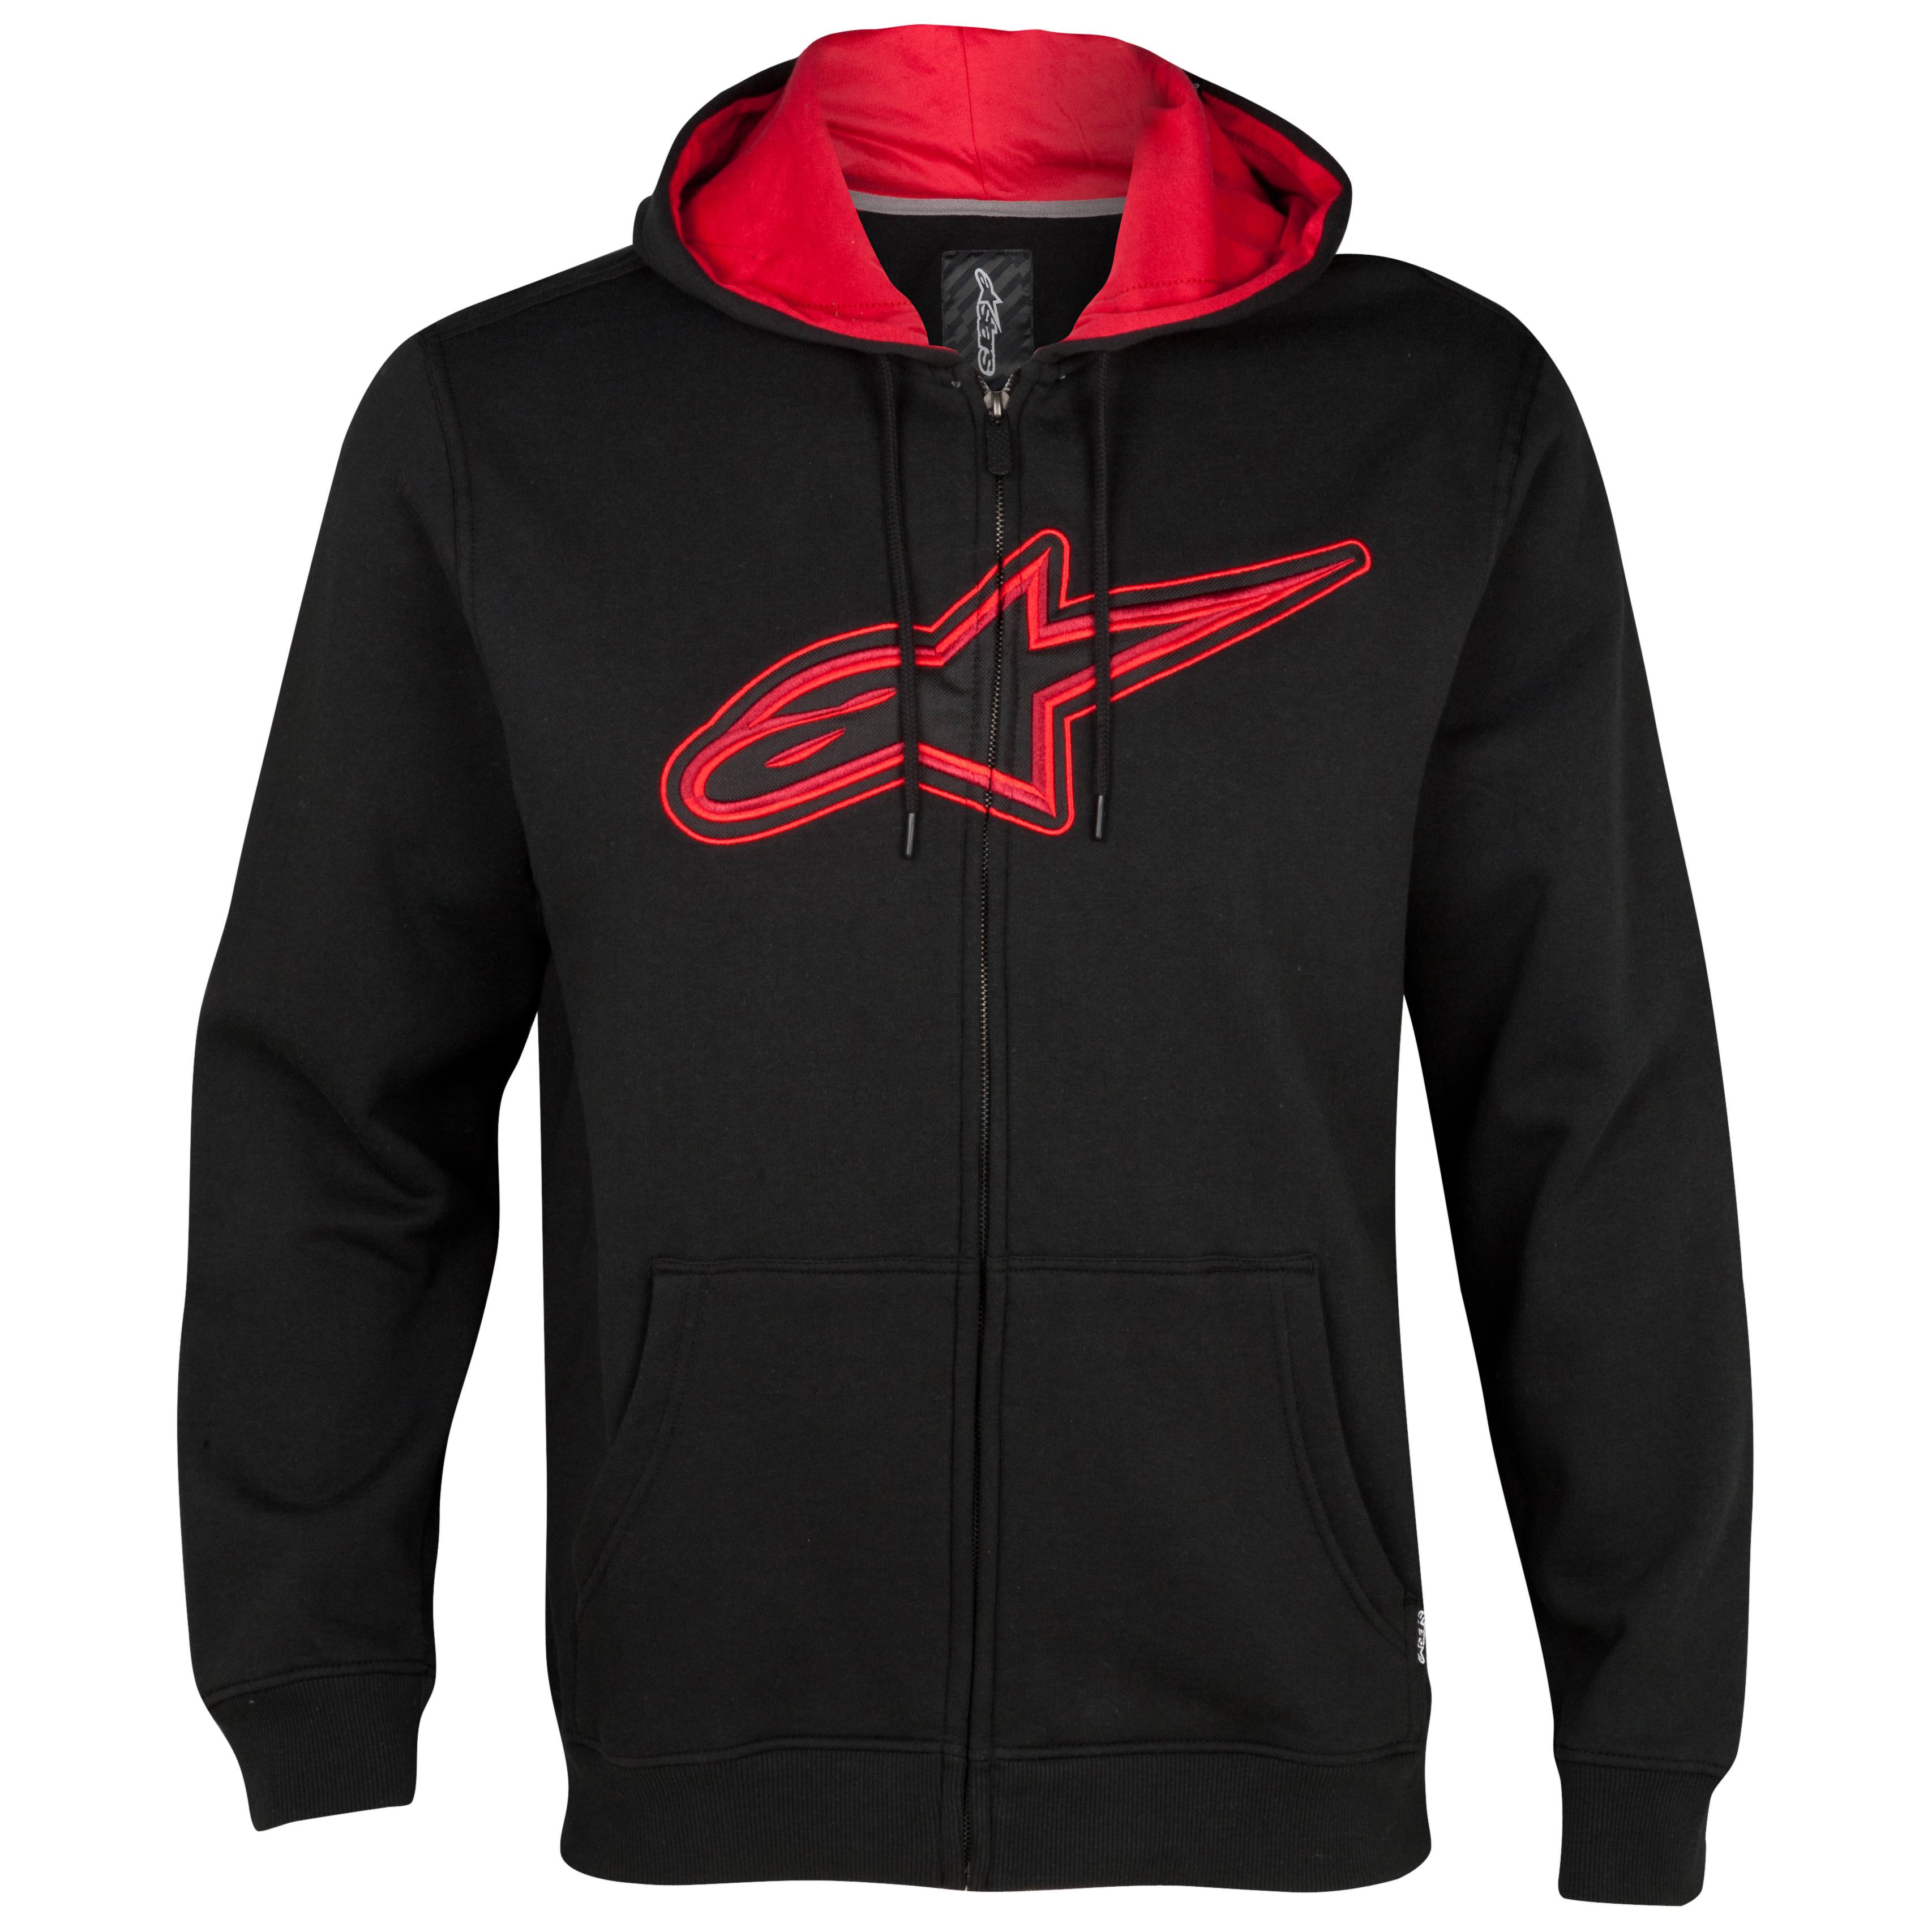 Alpinestar Alpinestars Destroyer Zip Fleece - Black